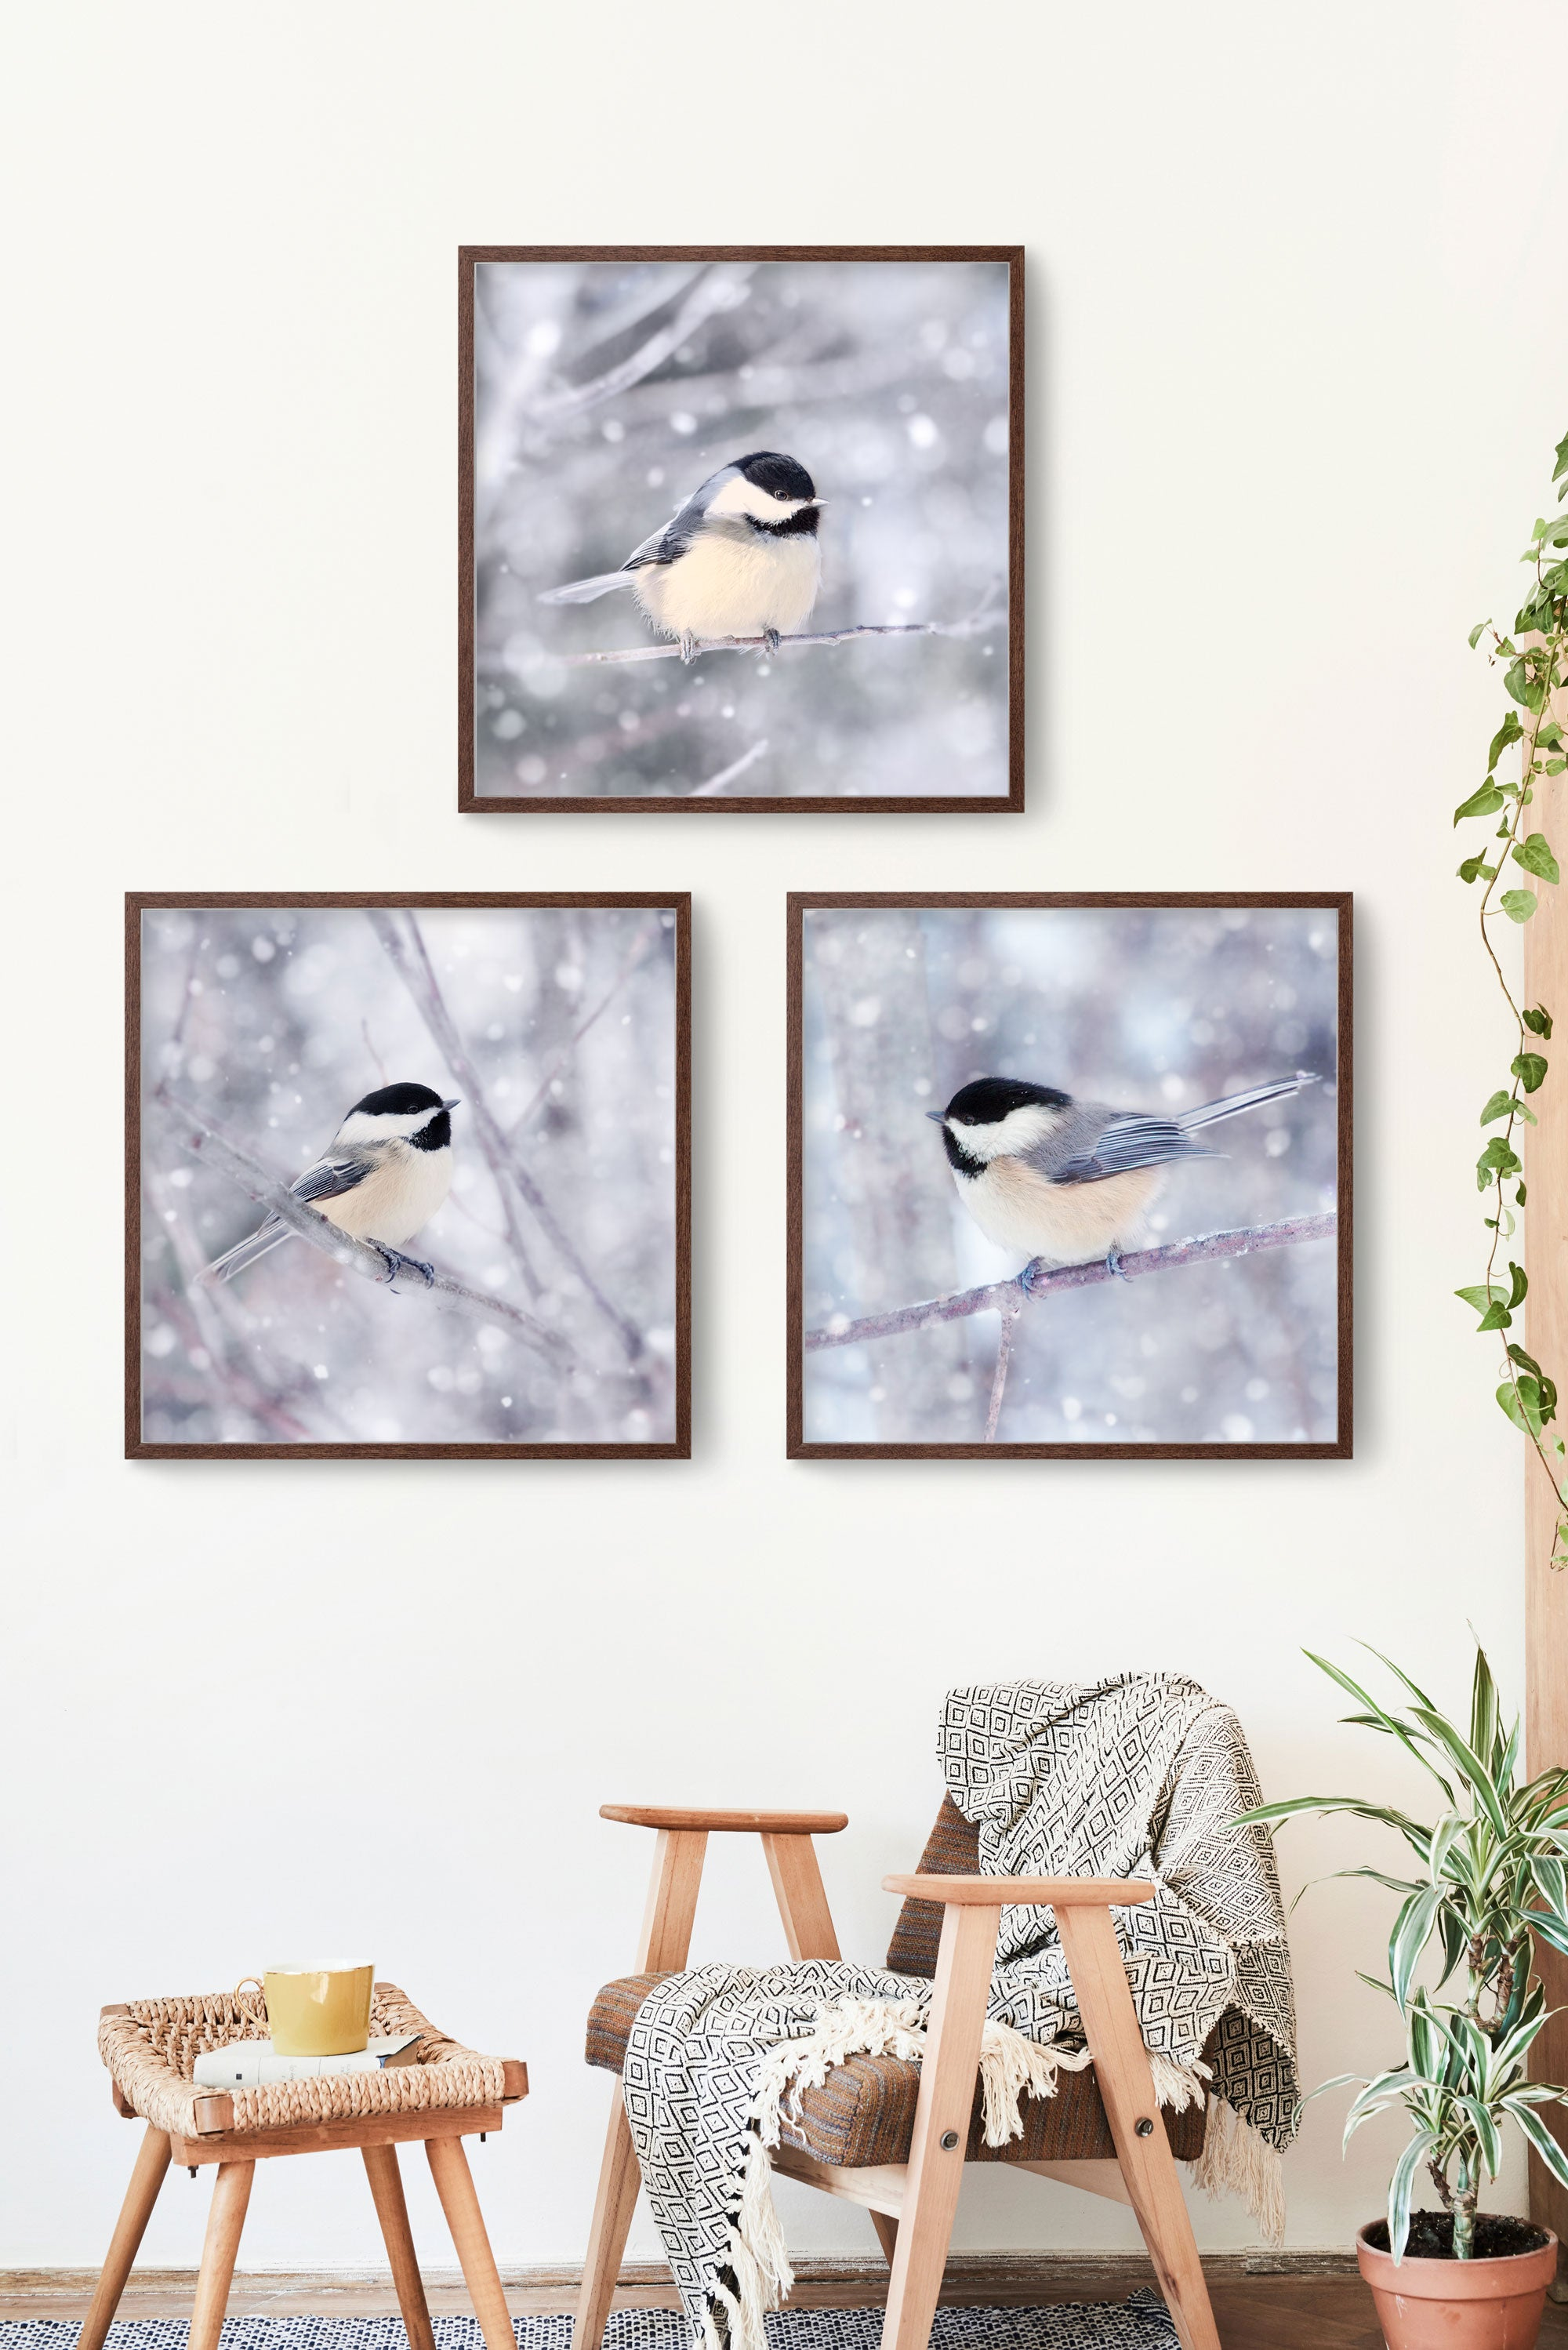 set of 3 prints of chickadees in snow